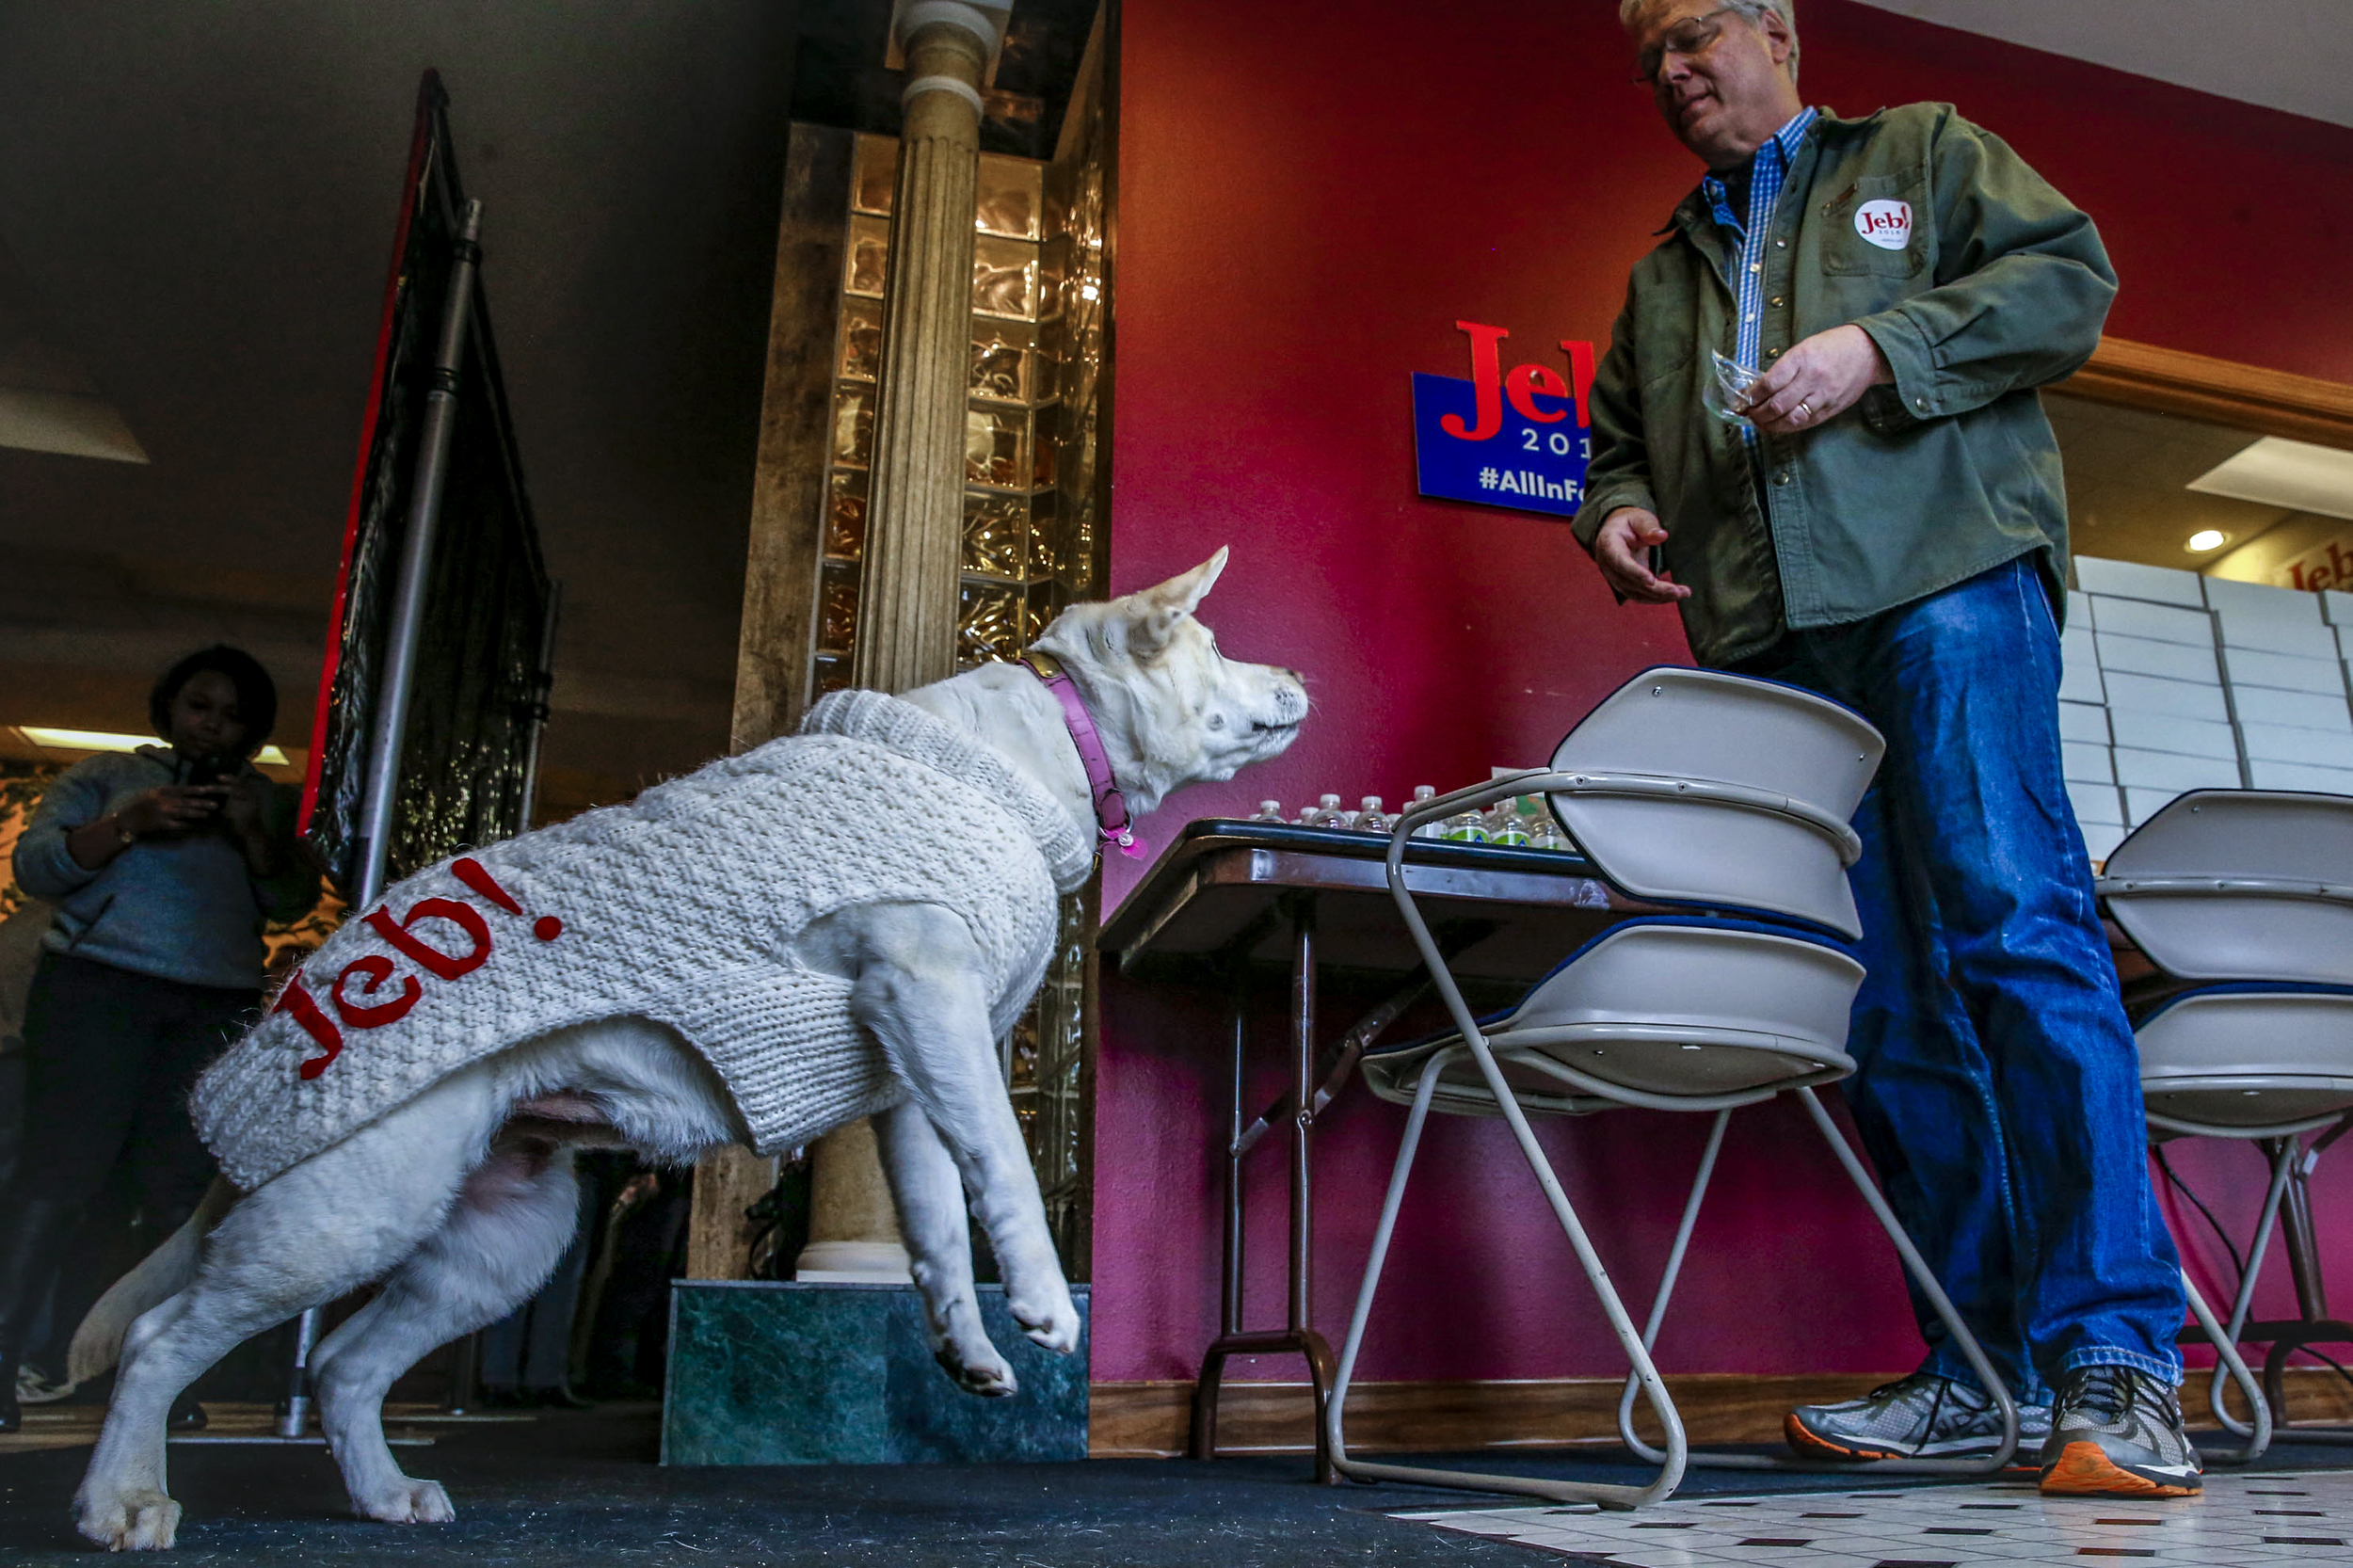 Volunteer Mark Rovinski of Springfield, Pennsylvania tosses a bacon treat for his yellow lab, Halley, before an event for presidential candidate Jeb Bush at the campaign's Cedar Rapids, Iowa, field office, Sunday, Jan. 31, 2016. The former Florida Governor made the stop in Cedar Rapids to deliver a brief speech and meet potential caucus goes the day before the Iowa Caucus.